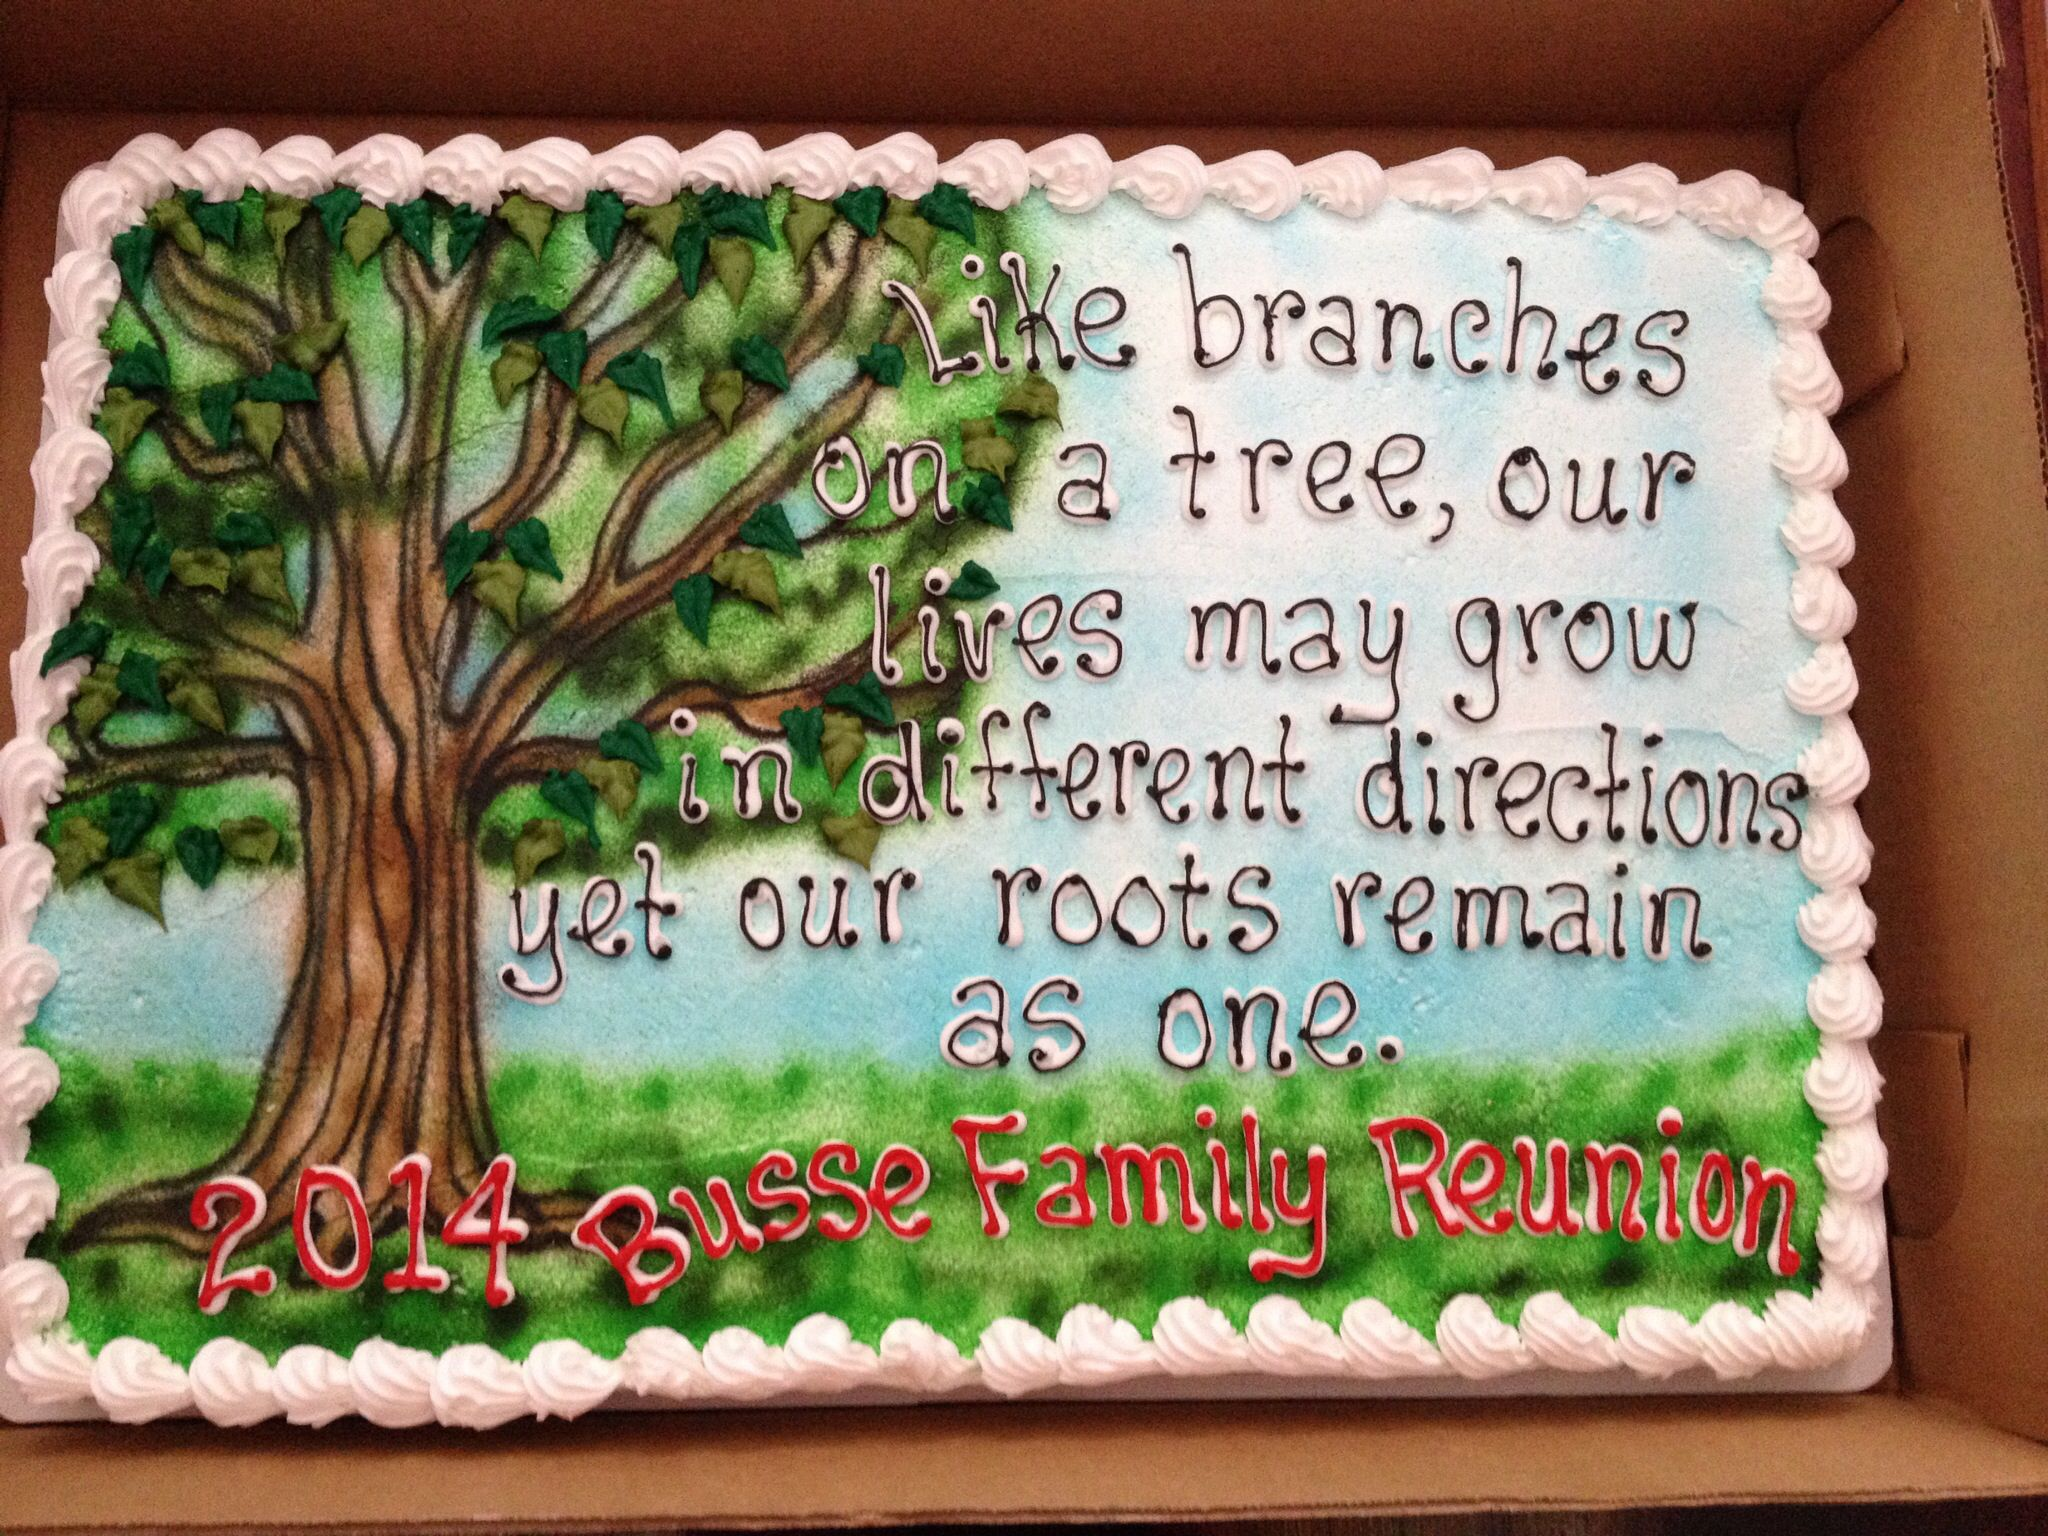 I Had This Cake Made For Our Family Reunion Love It Family Reunion Cakes Family Reunion Decorations Family Reunion Ideas Themes